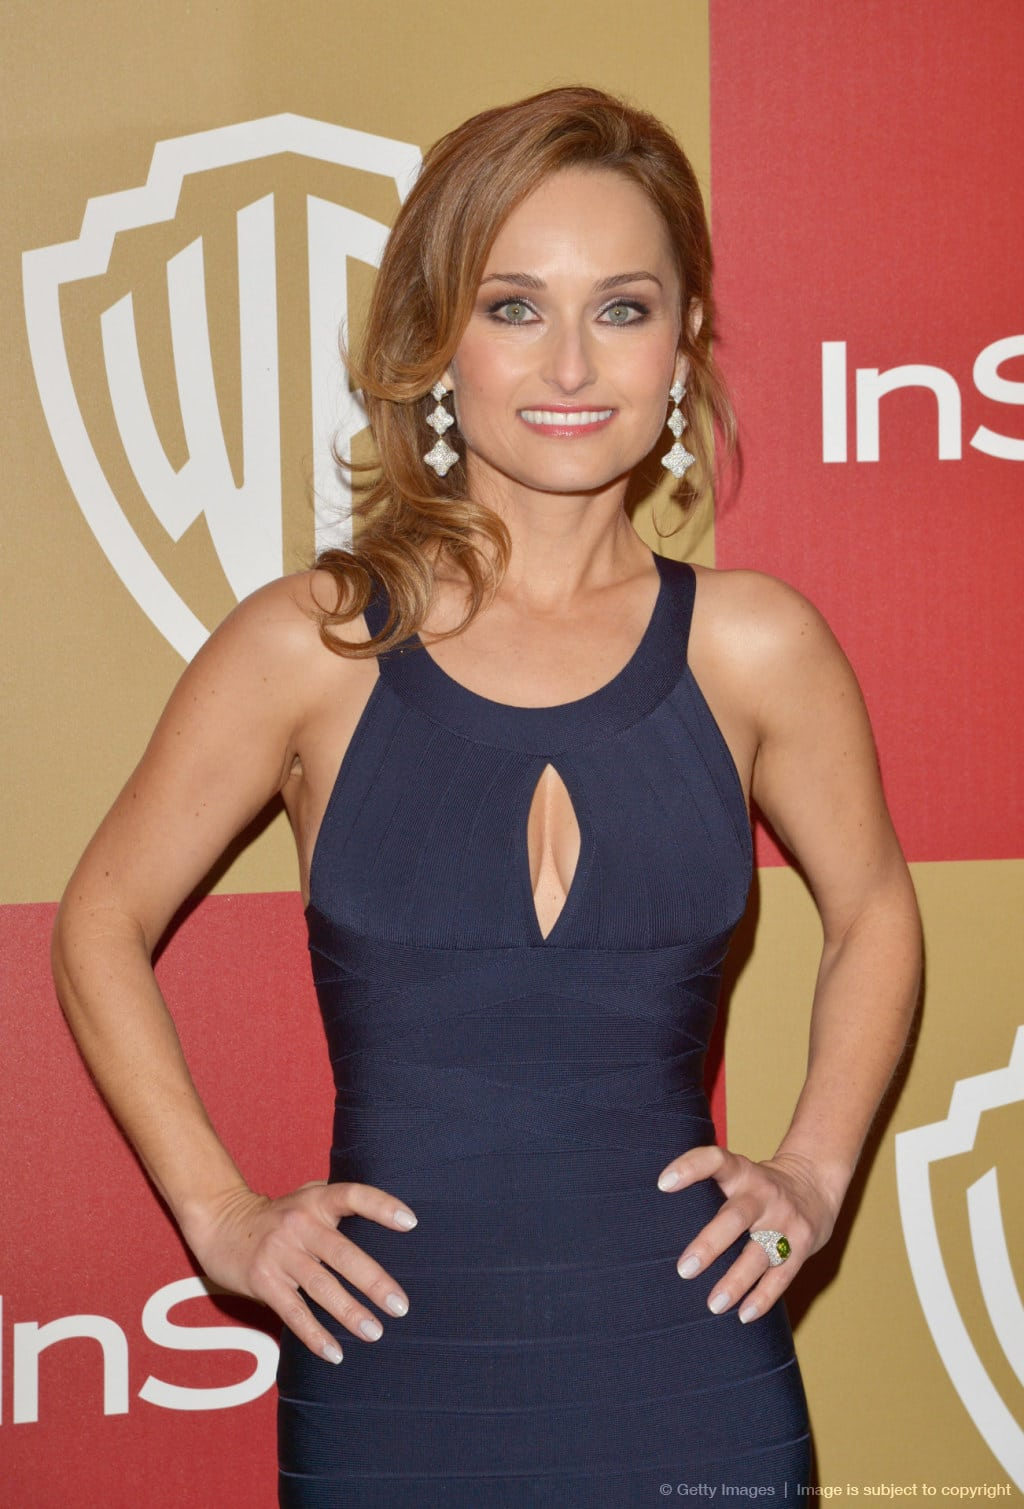 Giada De Laurentiis Picture 25 Pictures to pin on Pinterest Giada De Laurentiis Parents